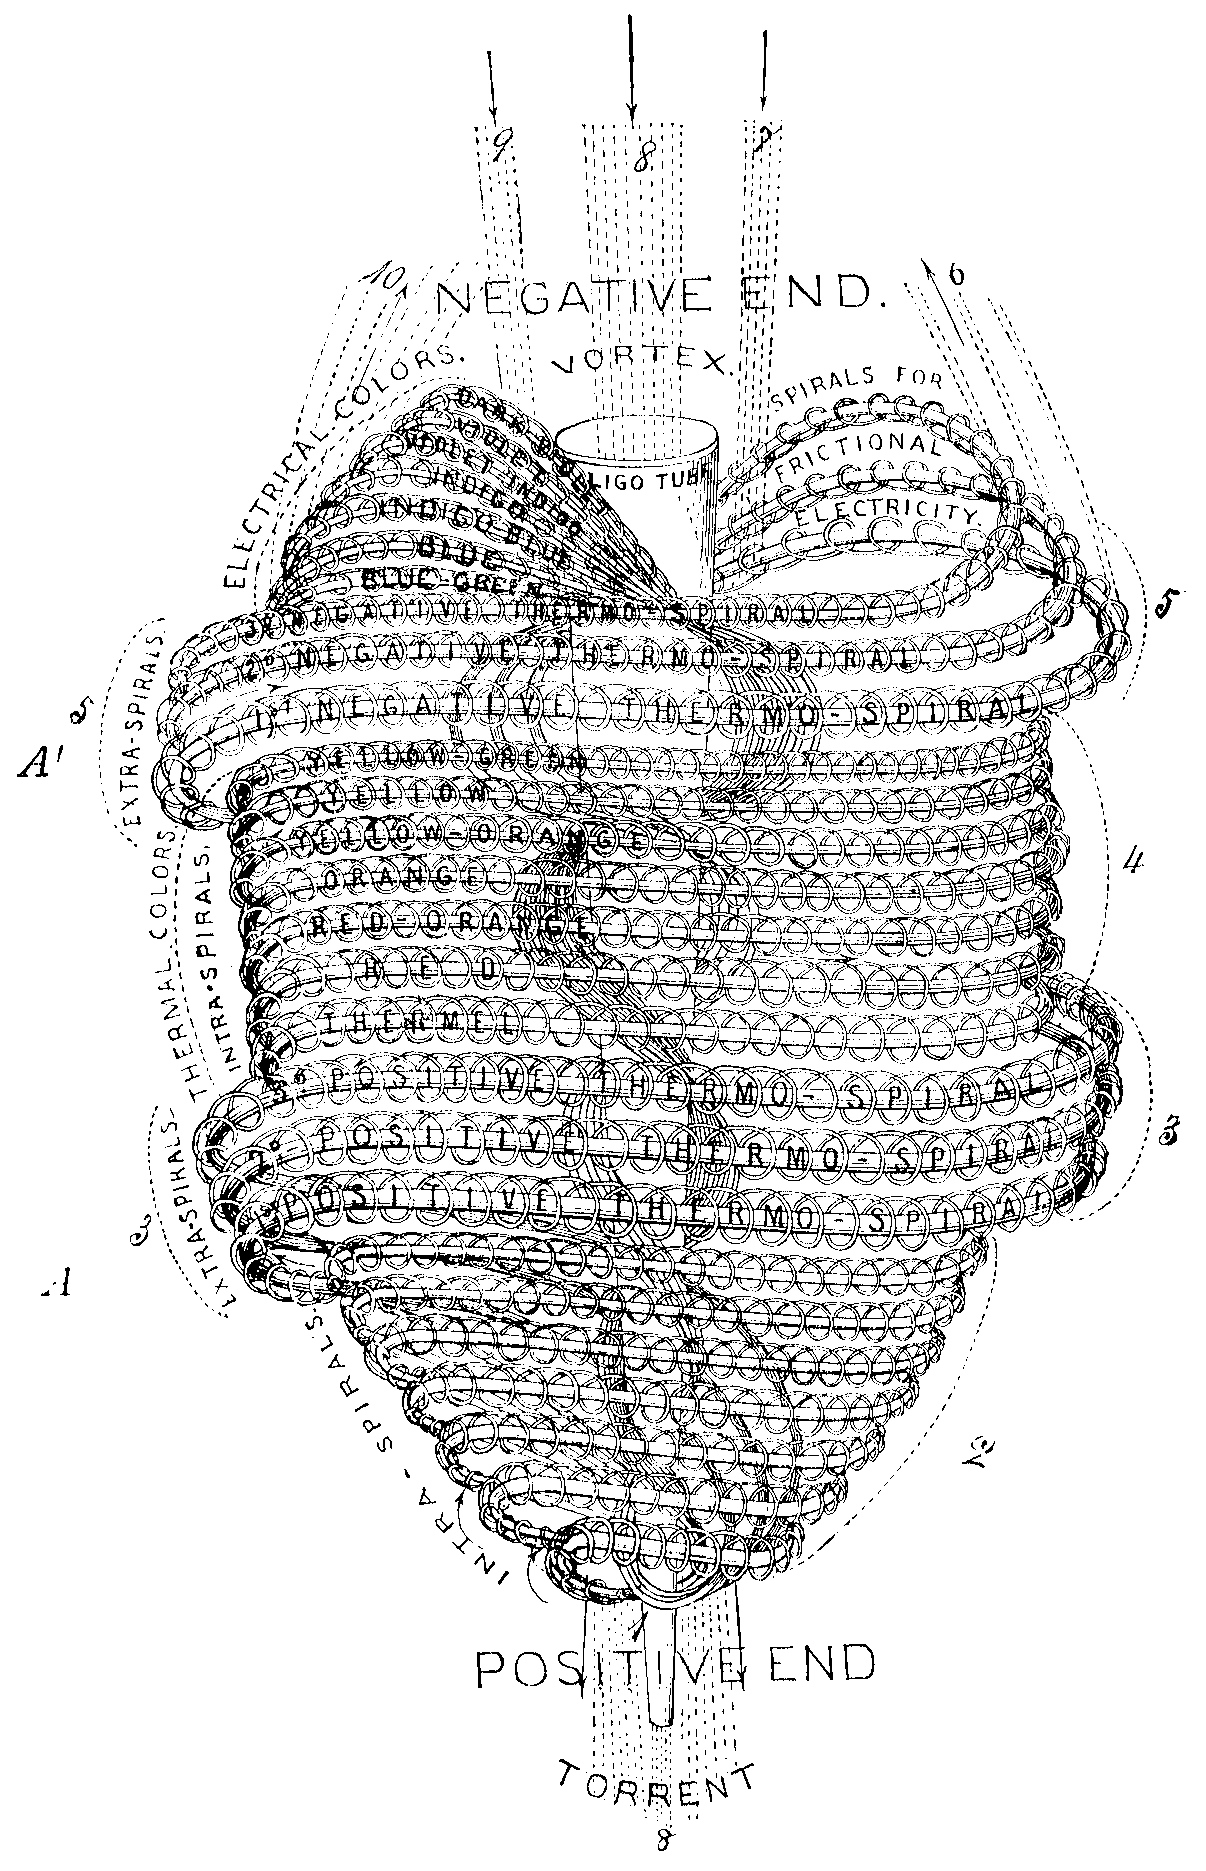 Babbitt Atom (as a Beating Heart) constructed of Compound Vortexial Motions